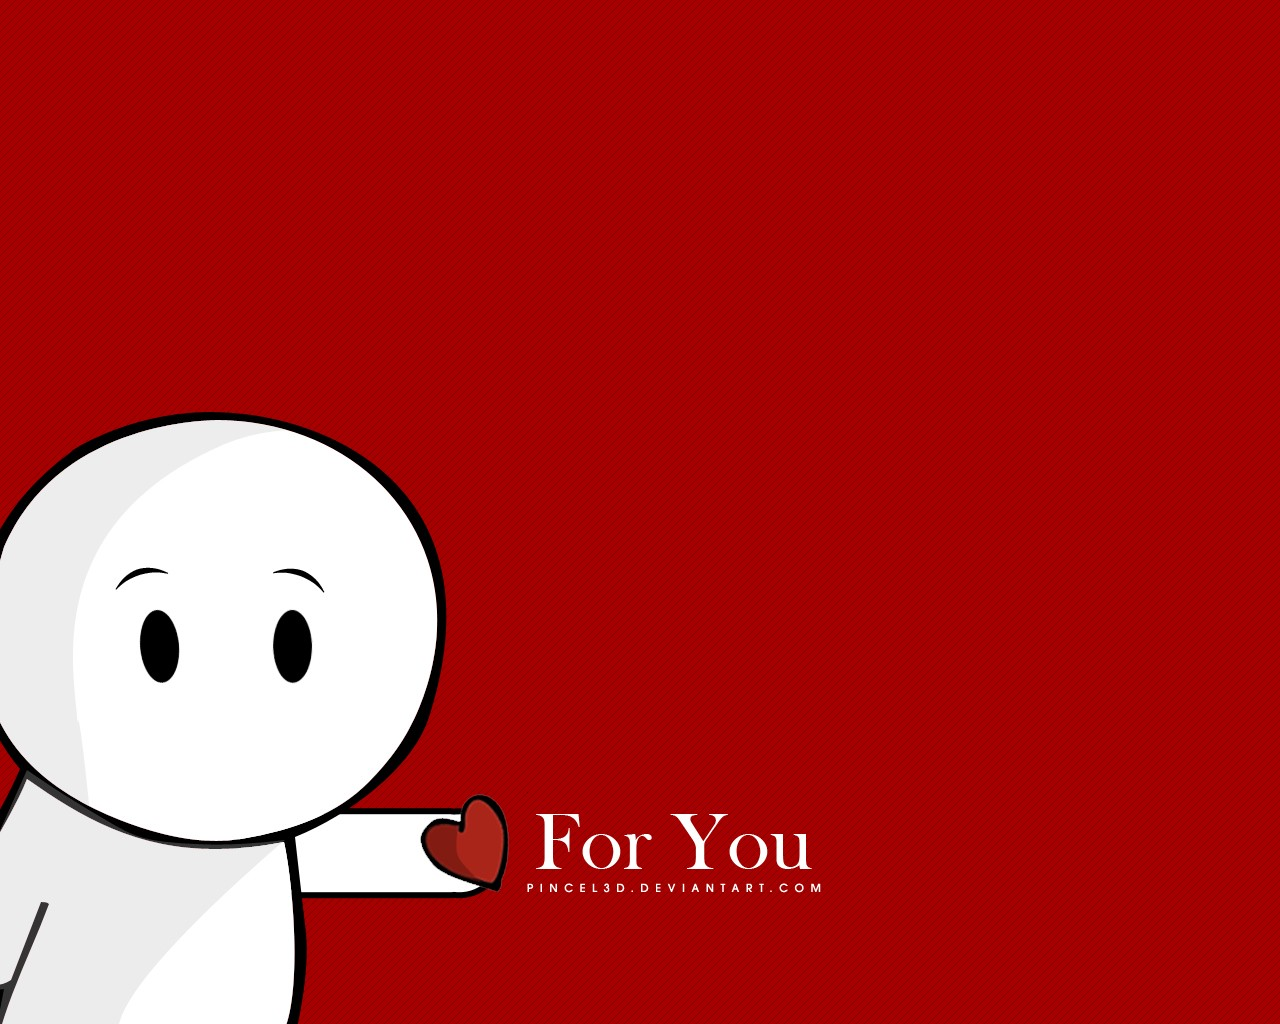 I Love You Wallpaper For Pc : I Love You Wallpapers HD A16 - HD Desktop Wallpapers 4k HD